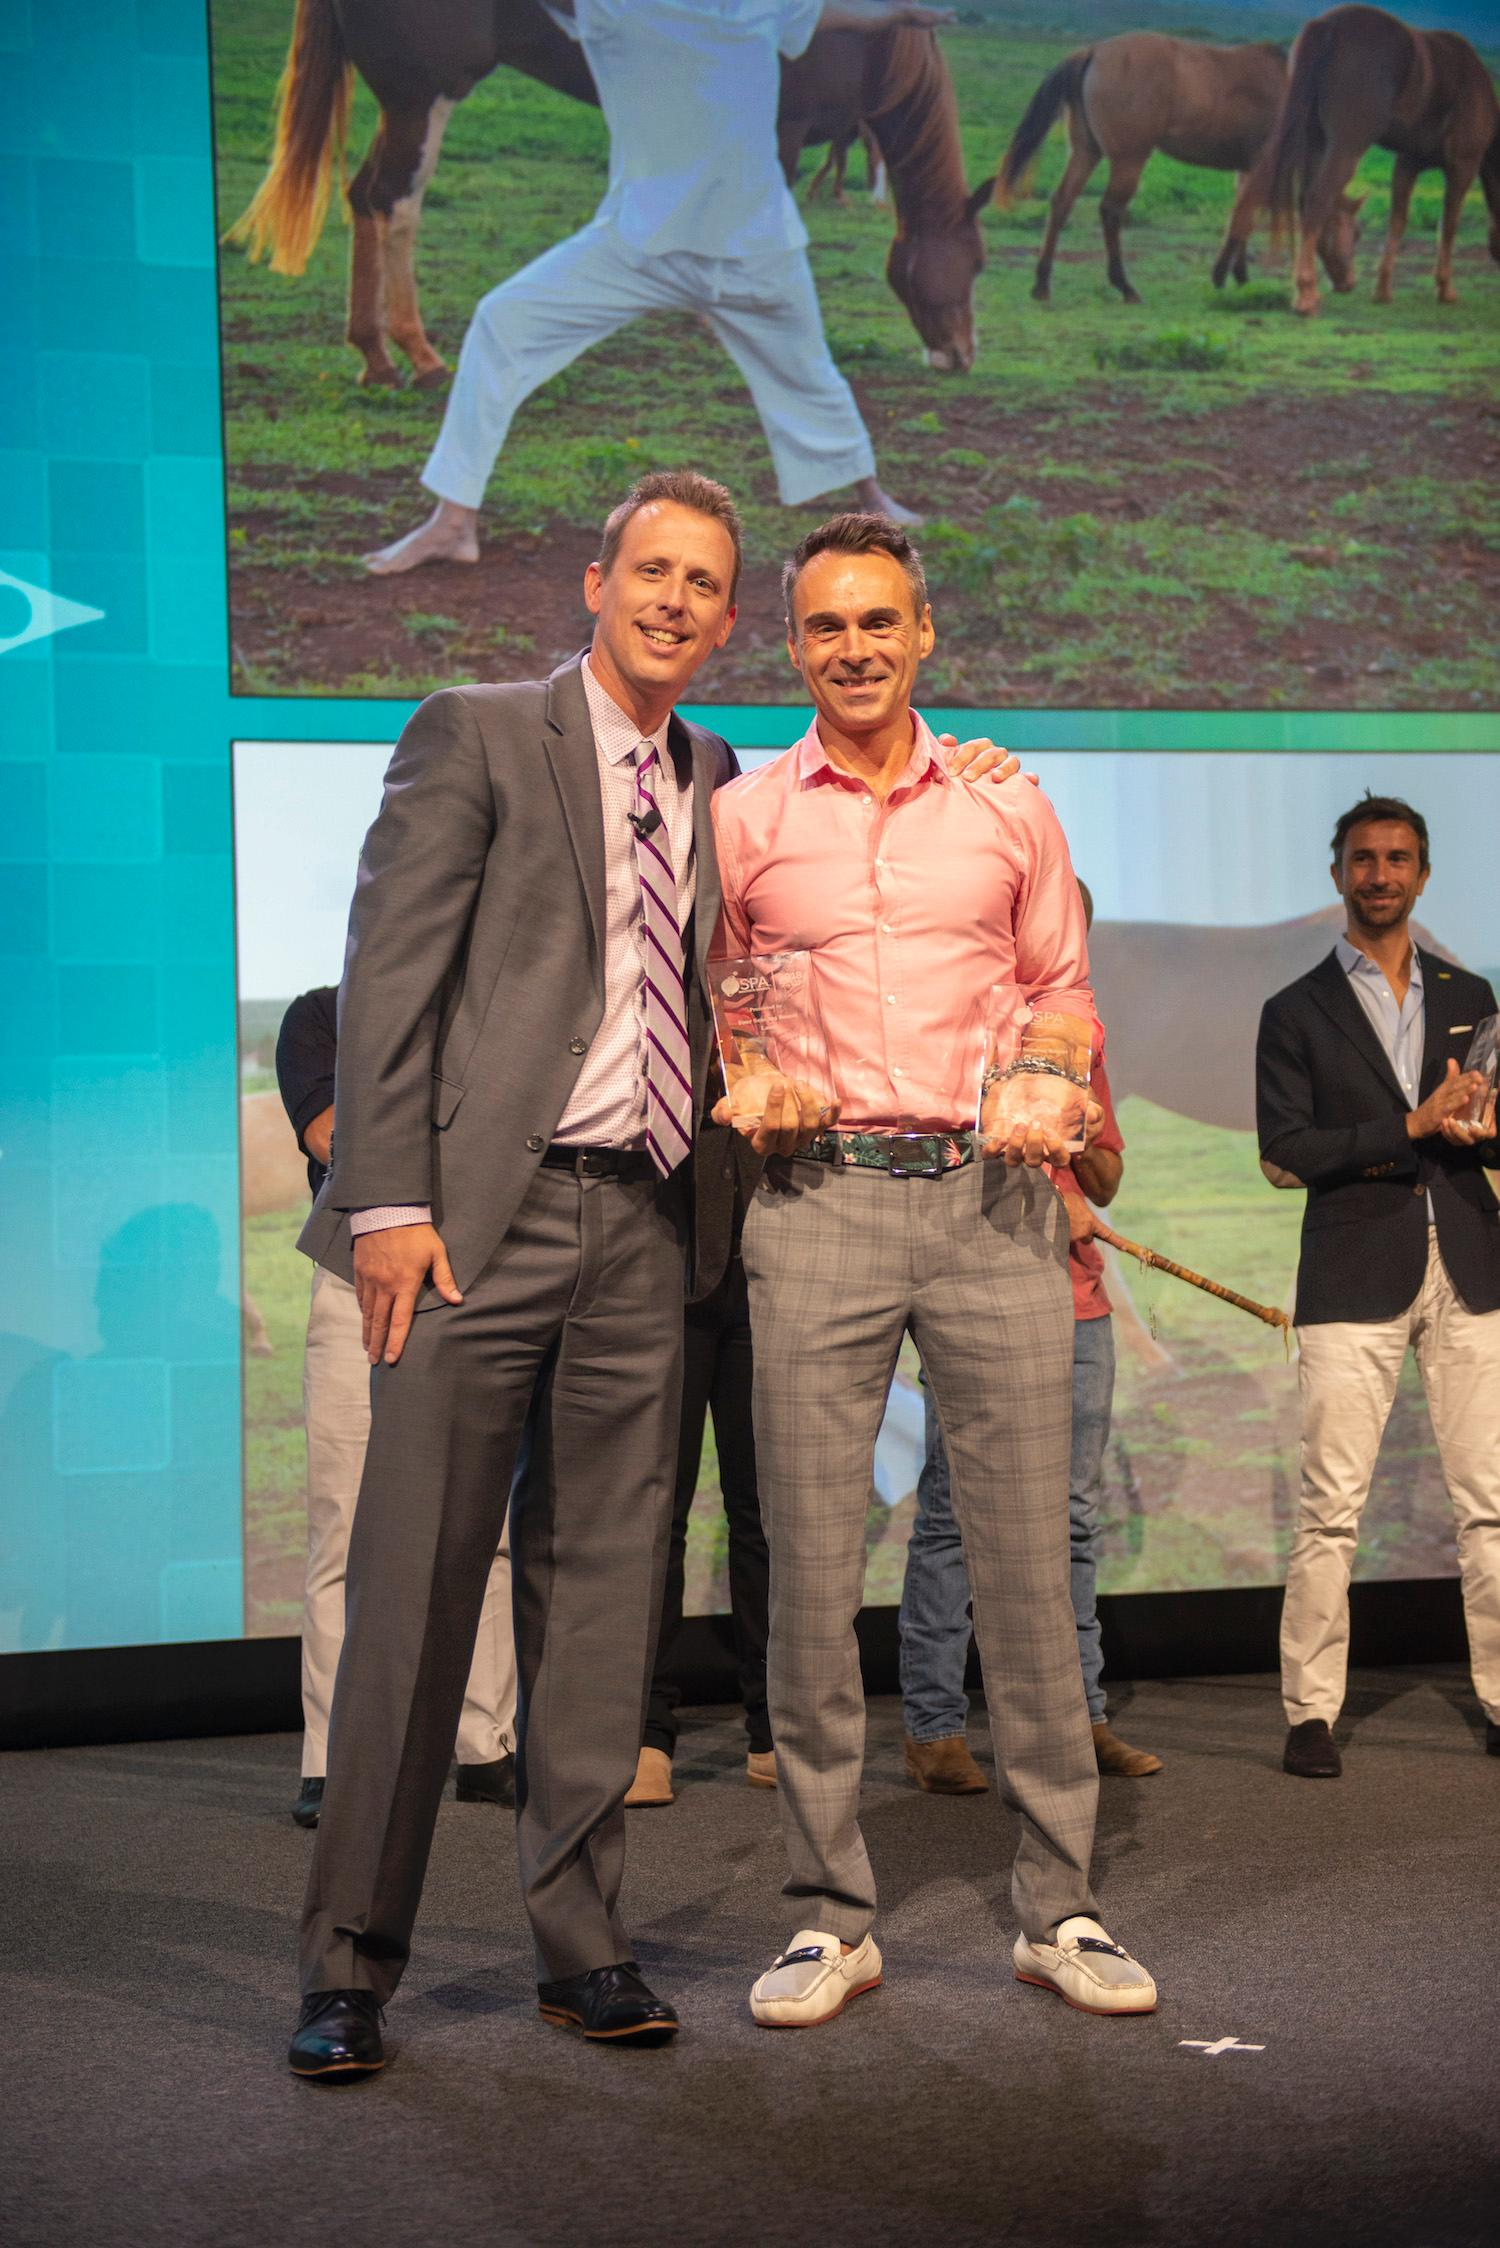 Shaw Cote, spa director at Four Seasons Resort Lana'i, accepts the award on stage with ISPA chair Garrett Mersberger